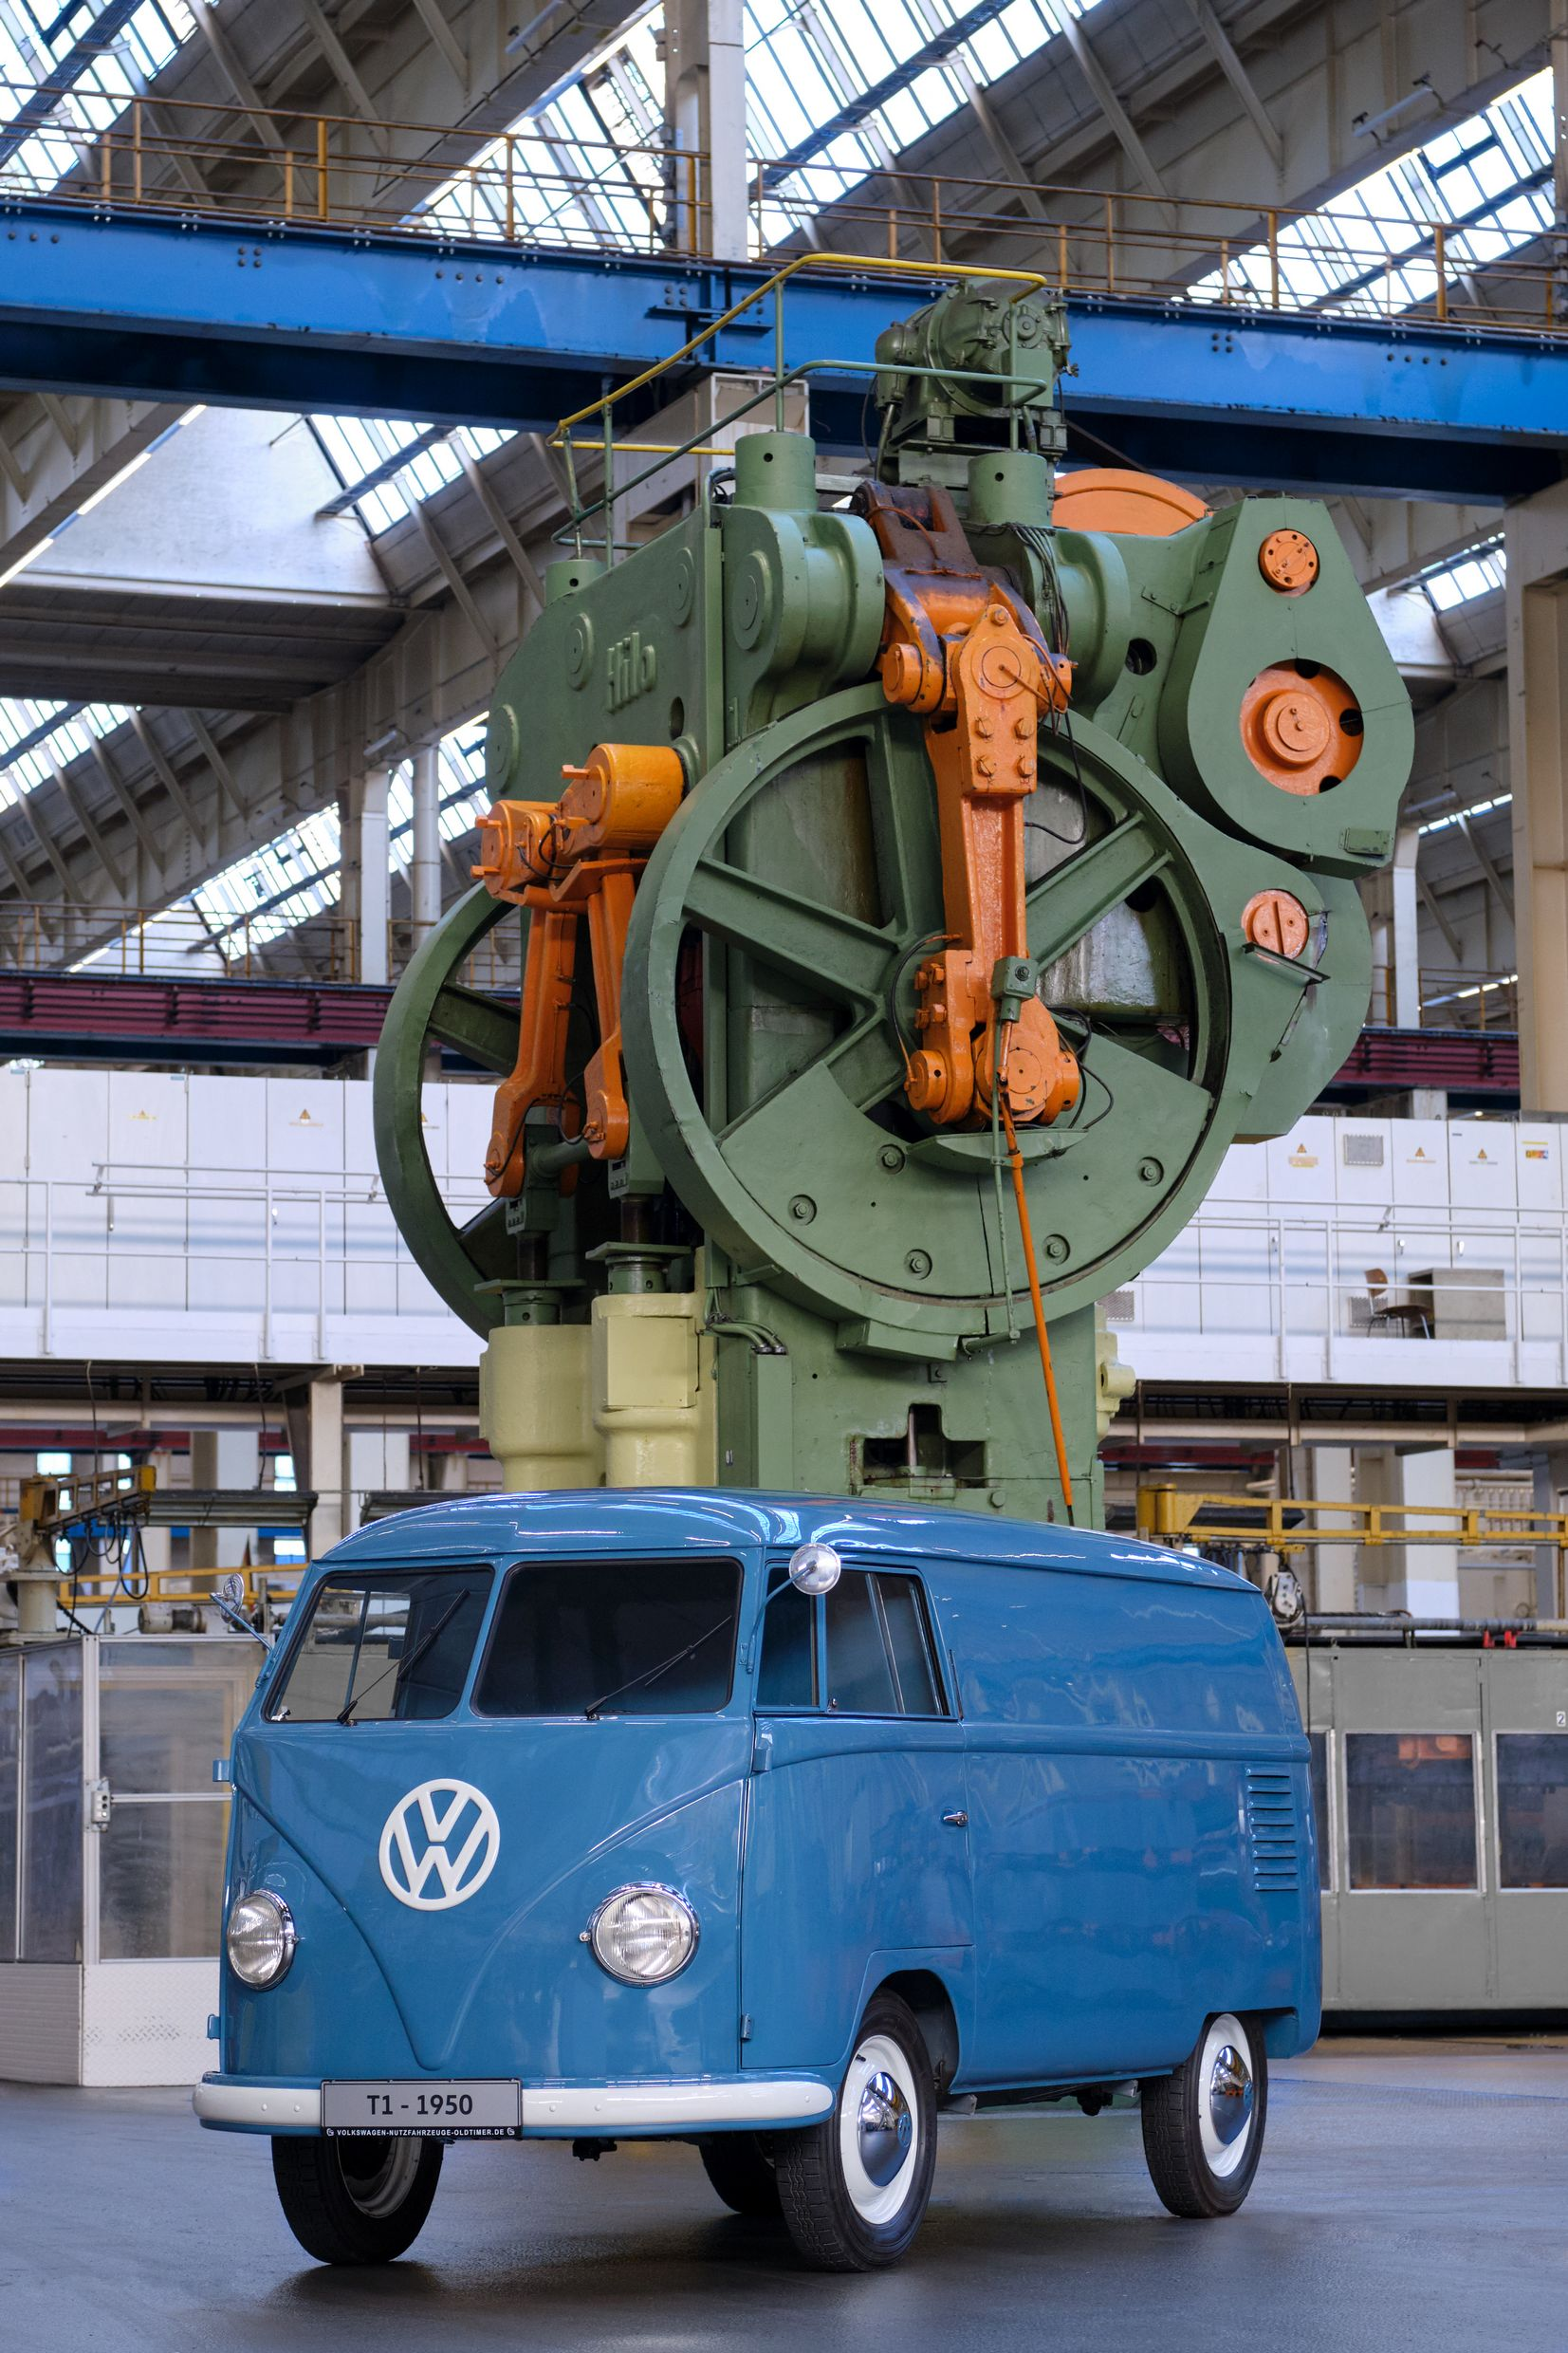 1950 VW T2 - Oldest - Industrial setting